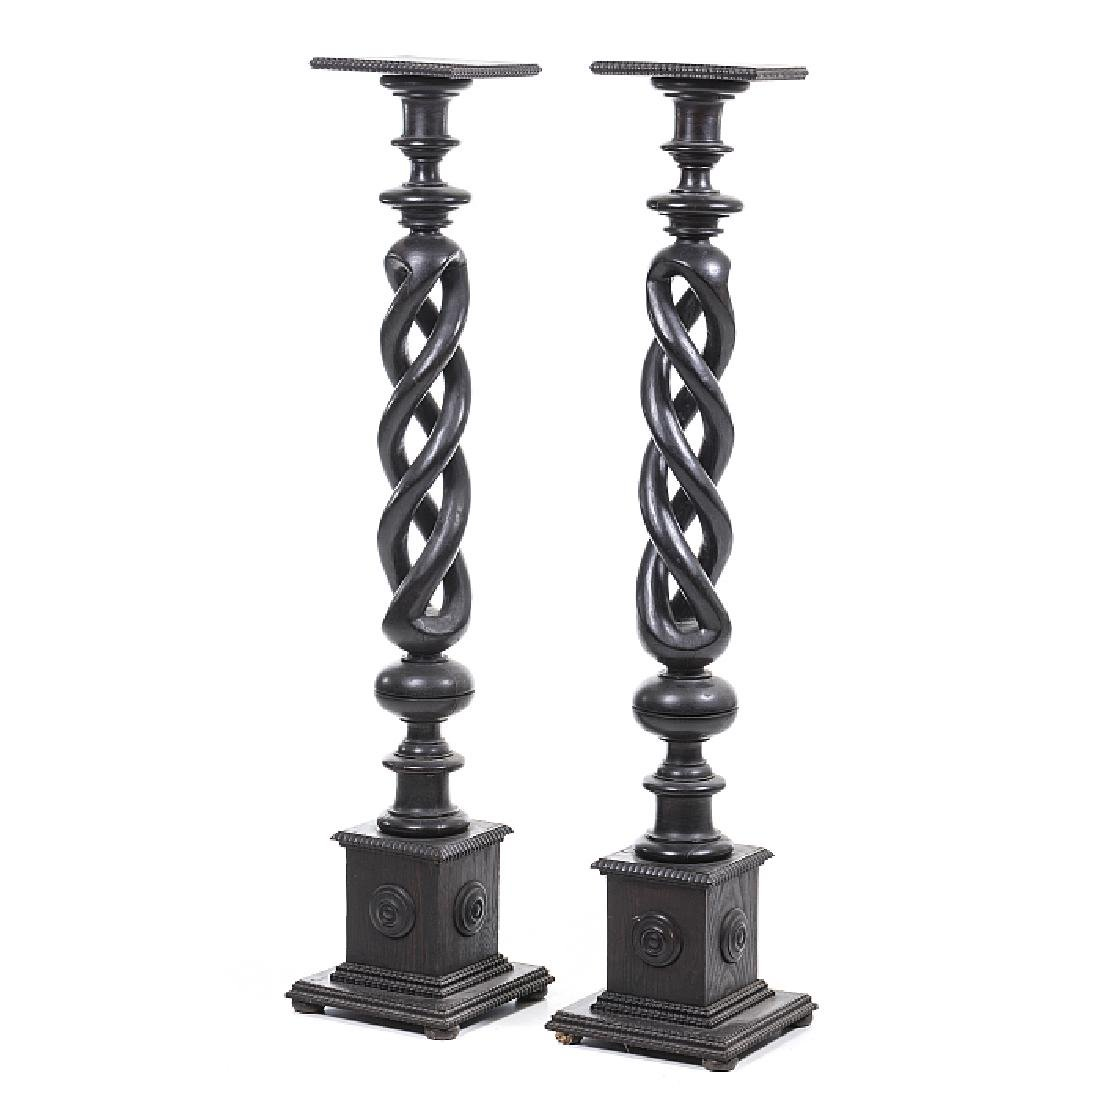 Pair of columns with twists